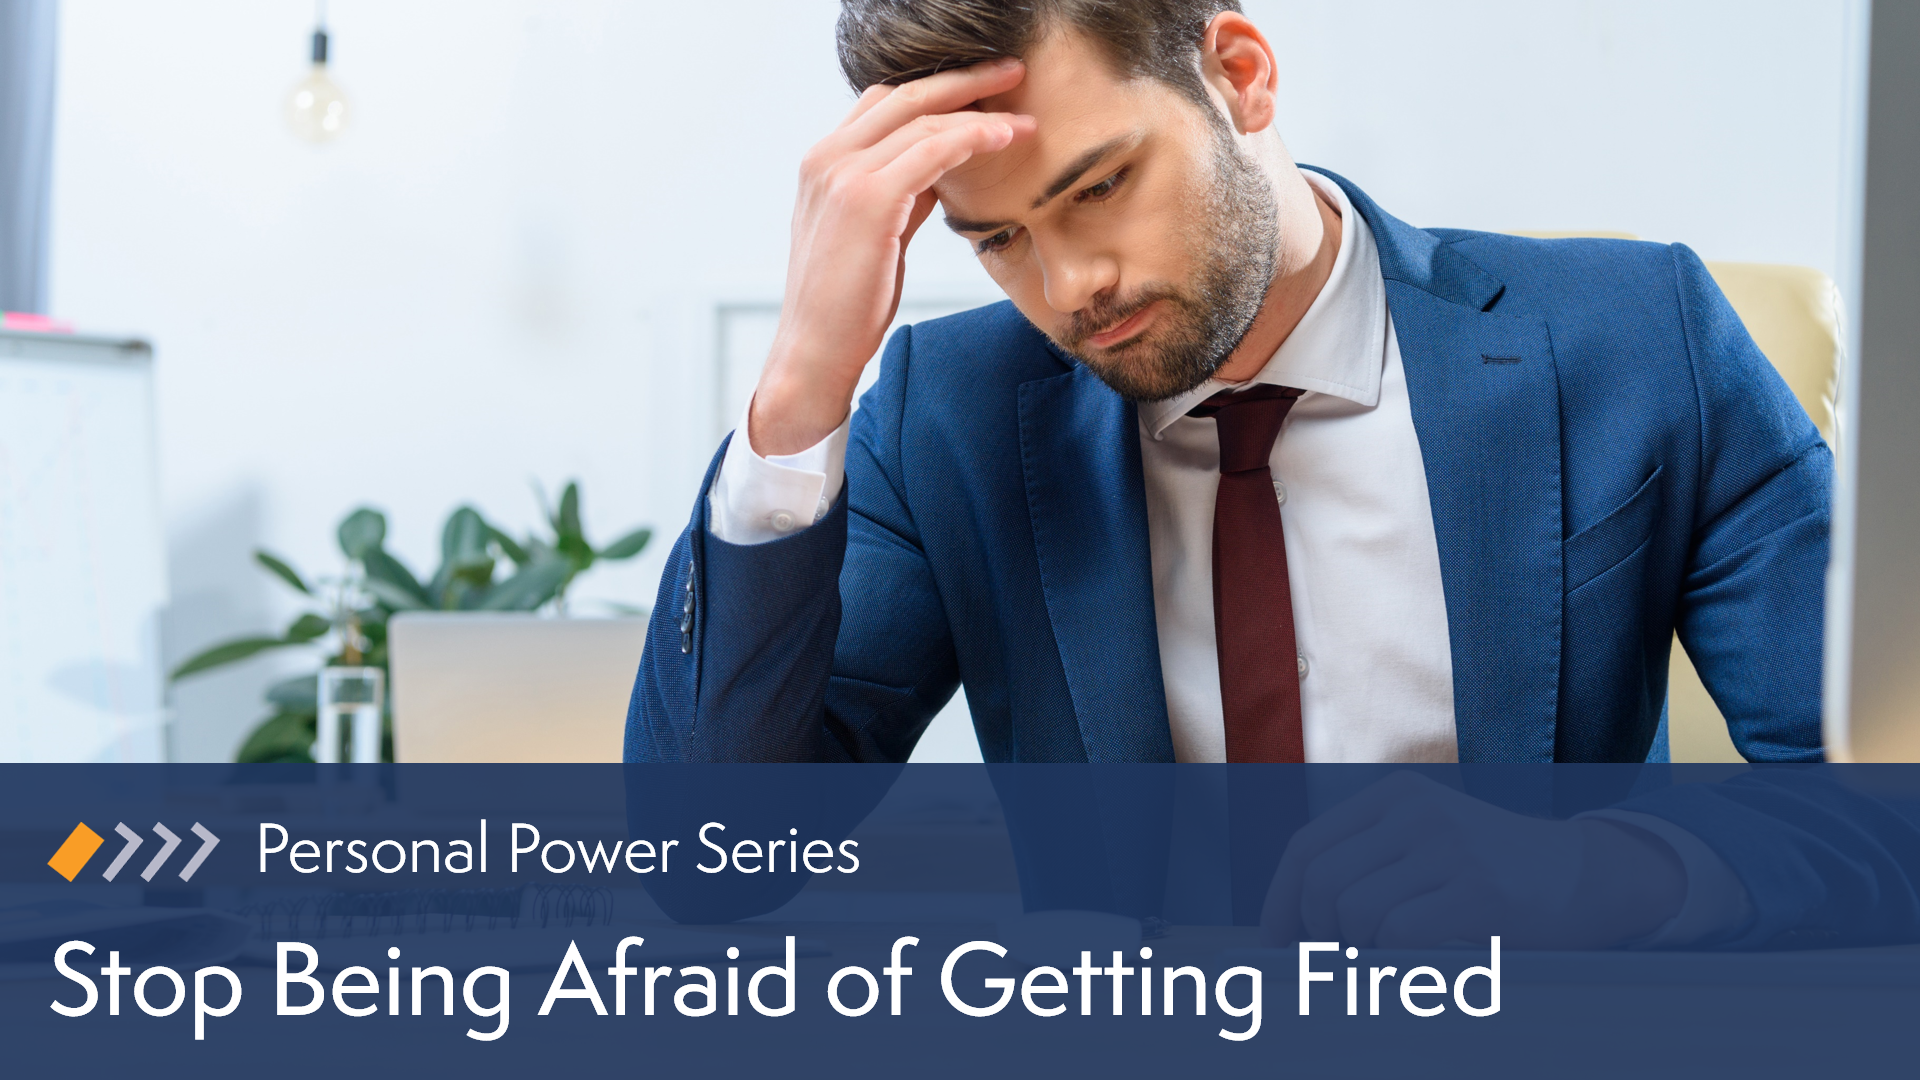 Personal Power: Stop Being Afraid of Getting Fired